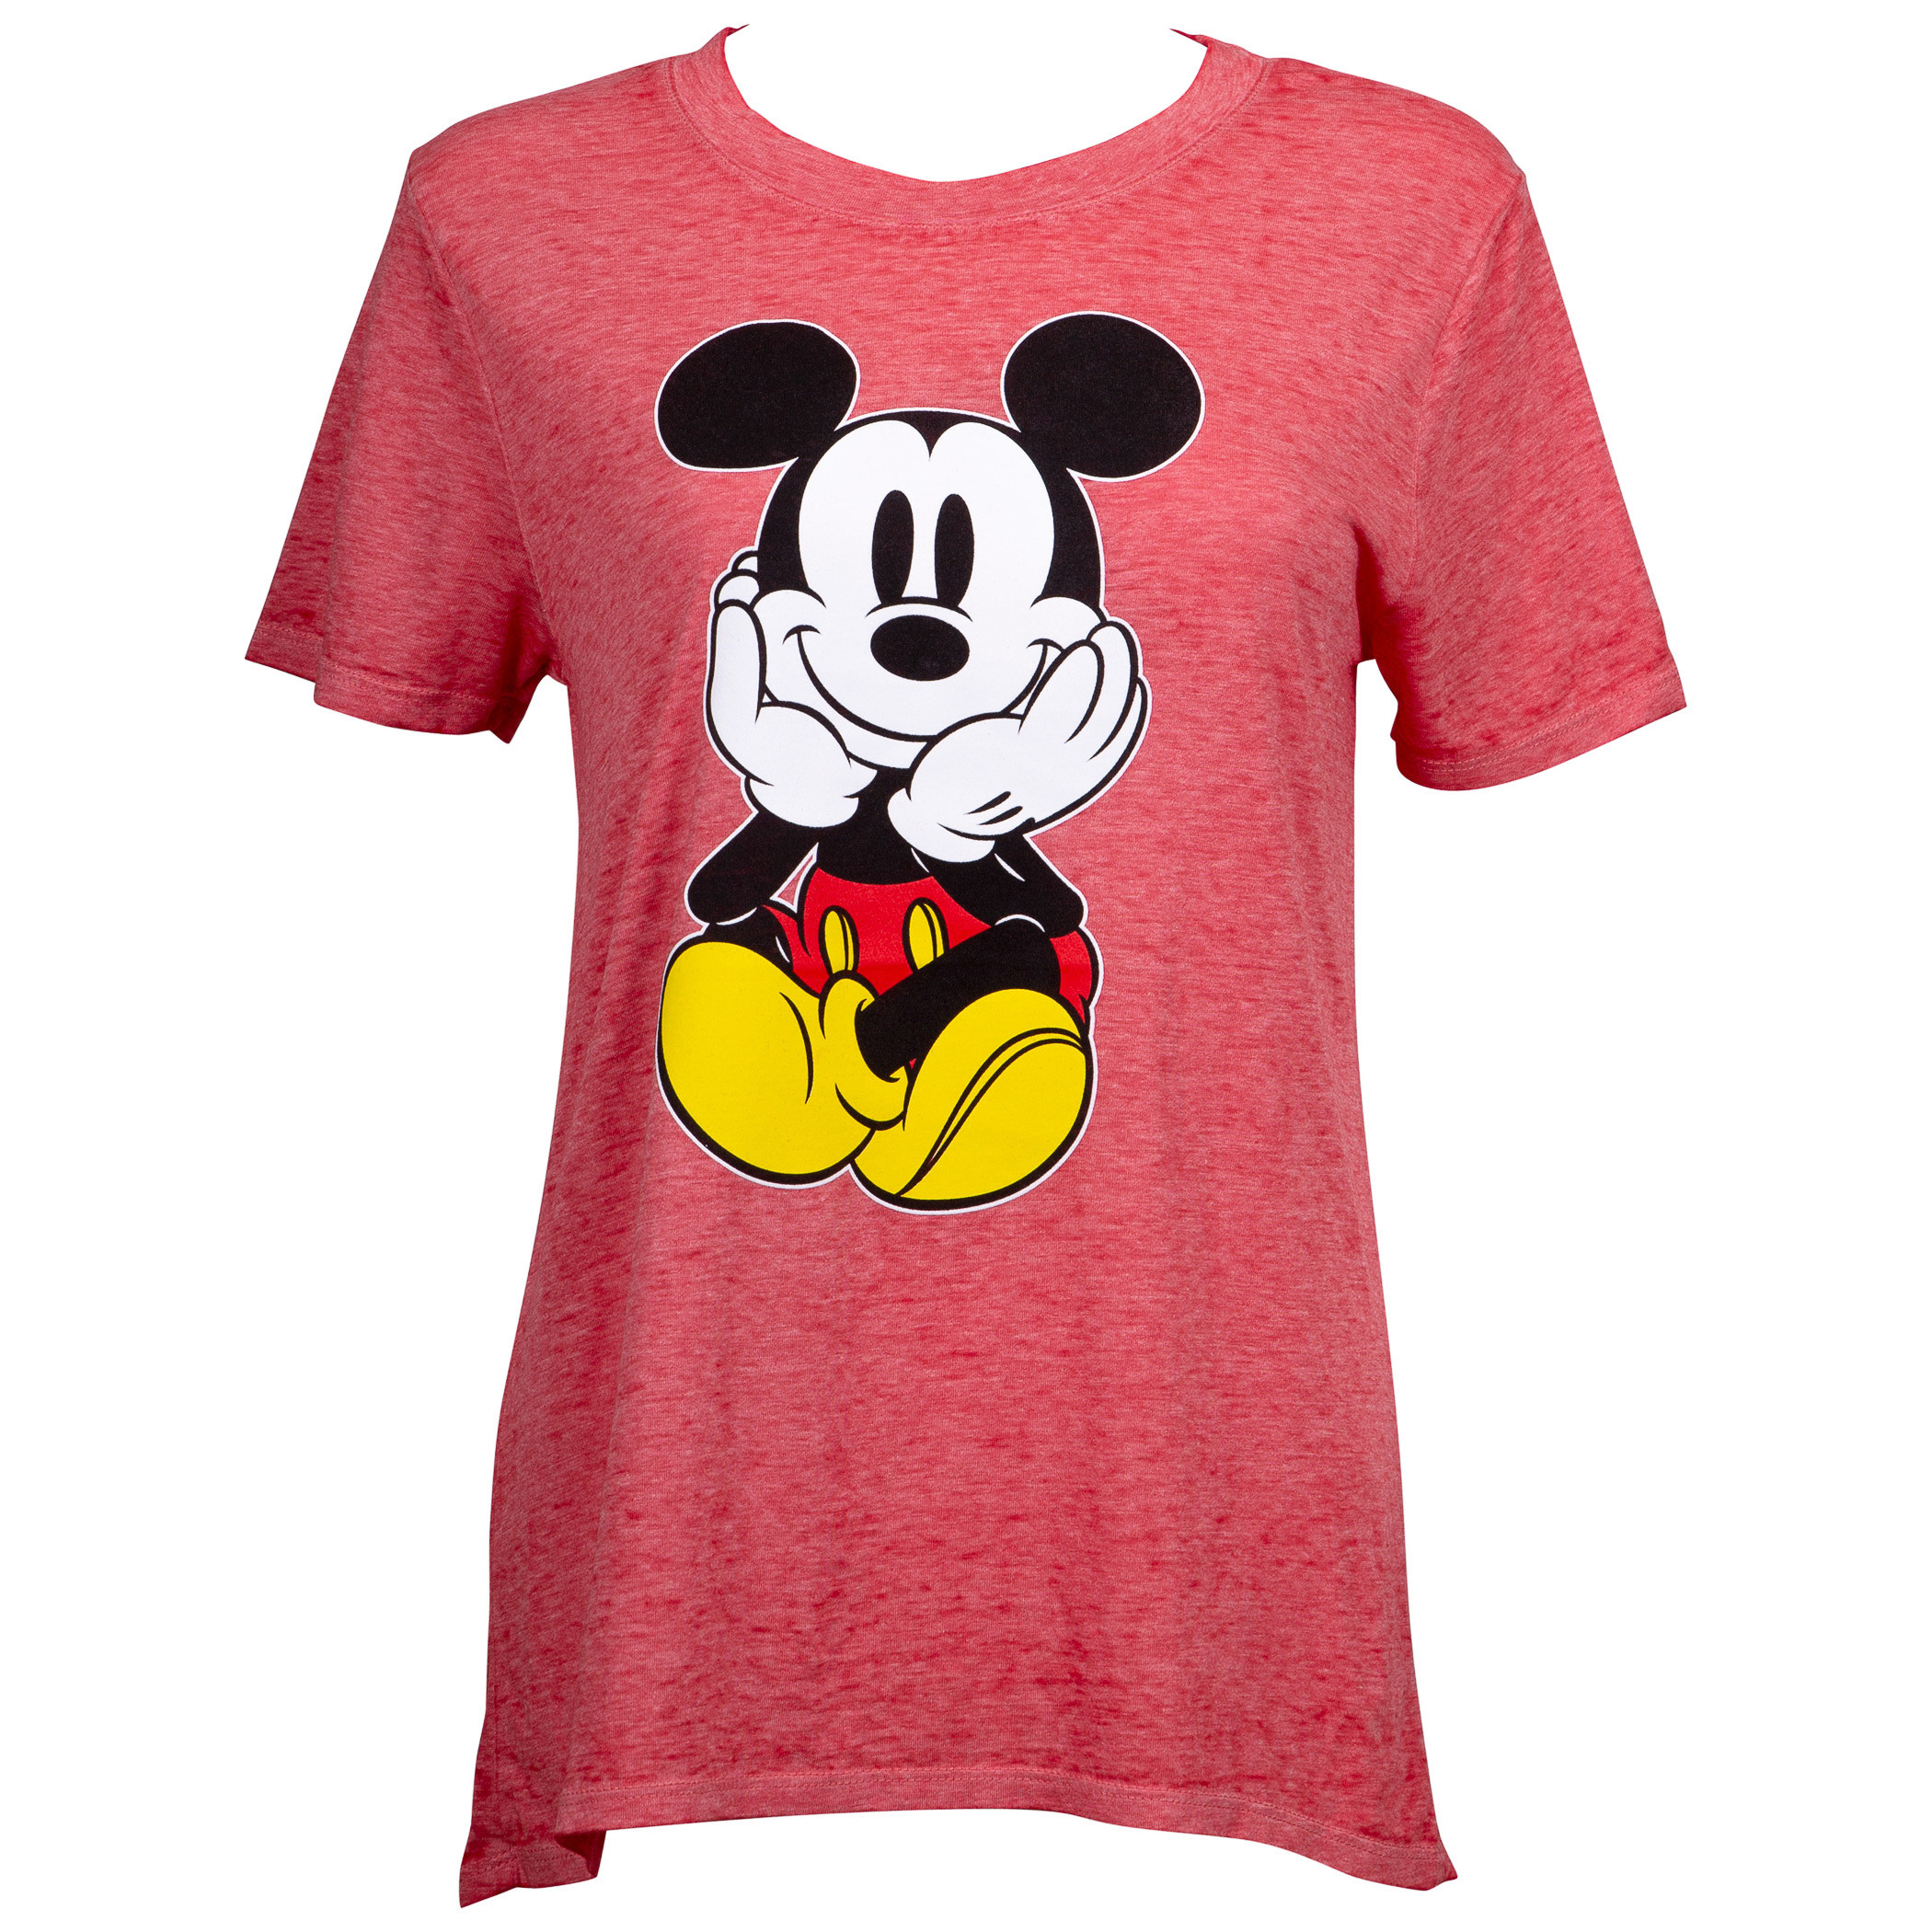 Mickey Mouse Front and Back Juniors Fitted Red T-Shirt